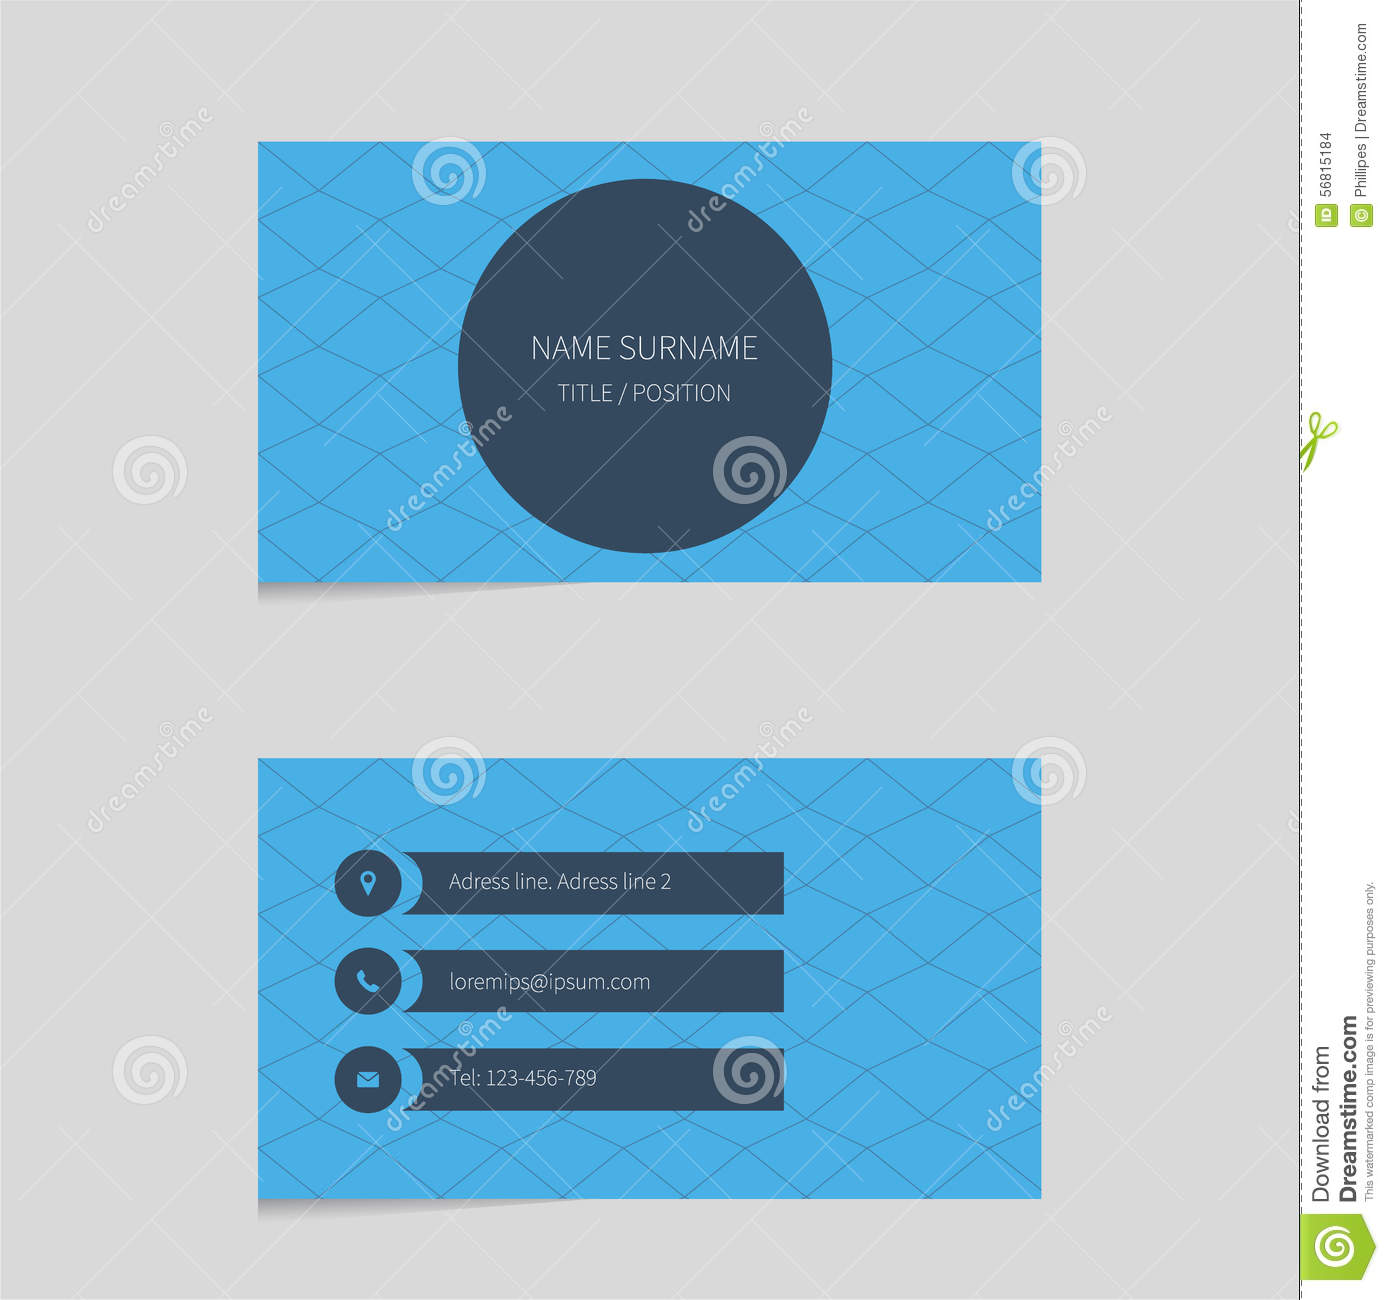 business card template in blue color stock vector illustration of